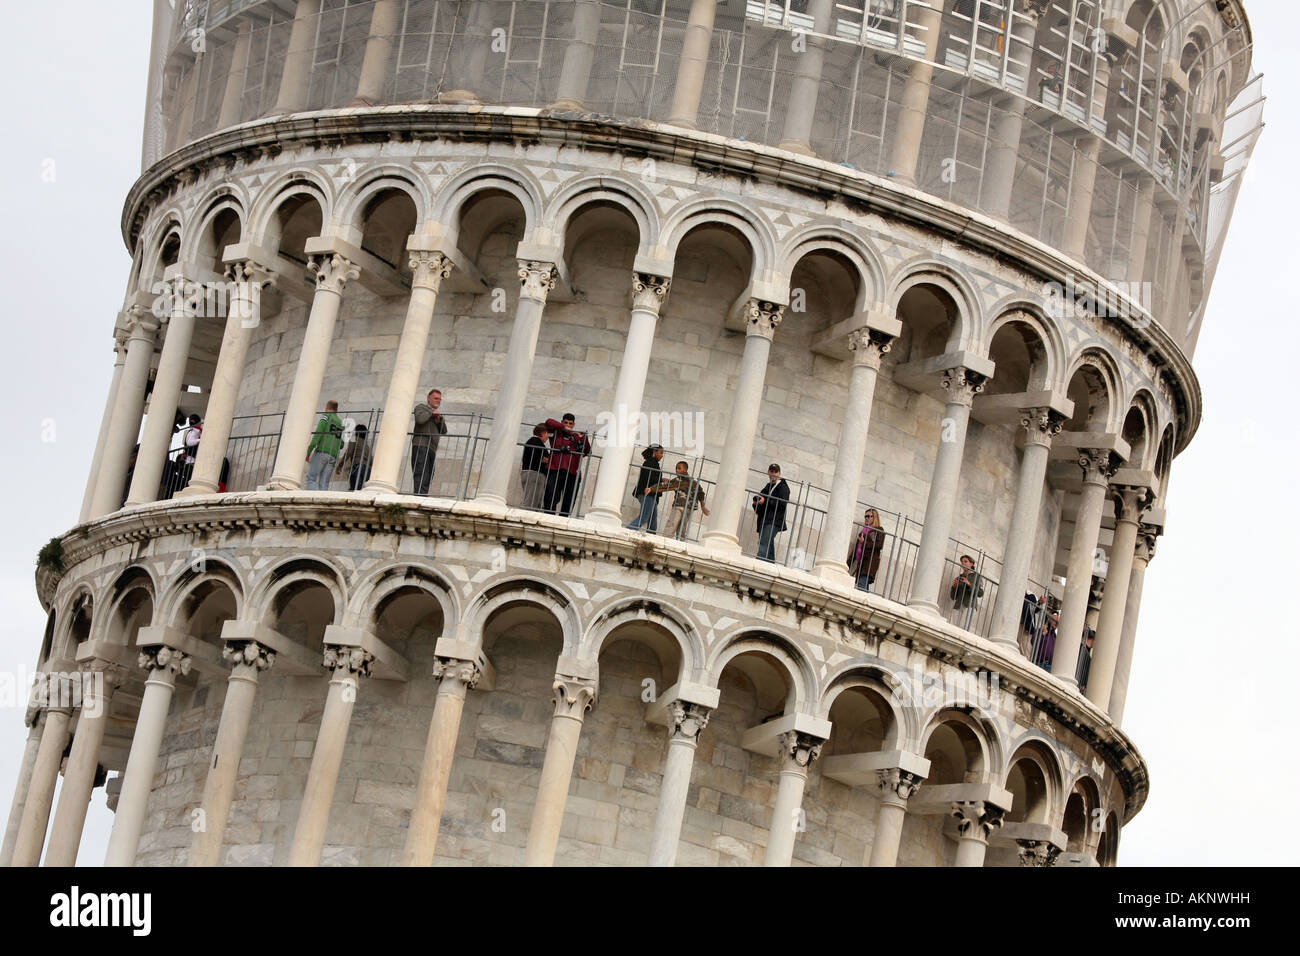 Tourists Climb The Leaning Tower Of Pisa, Pisa, Italy